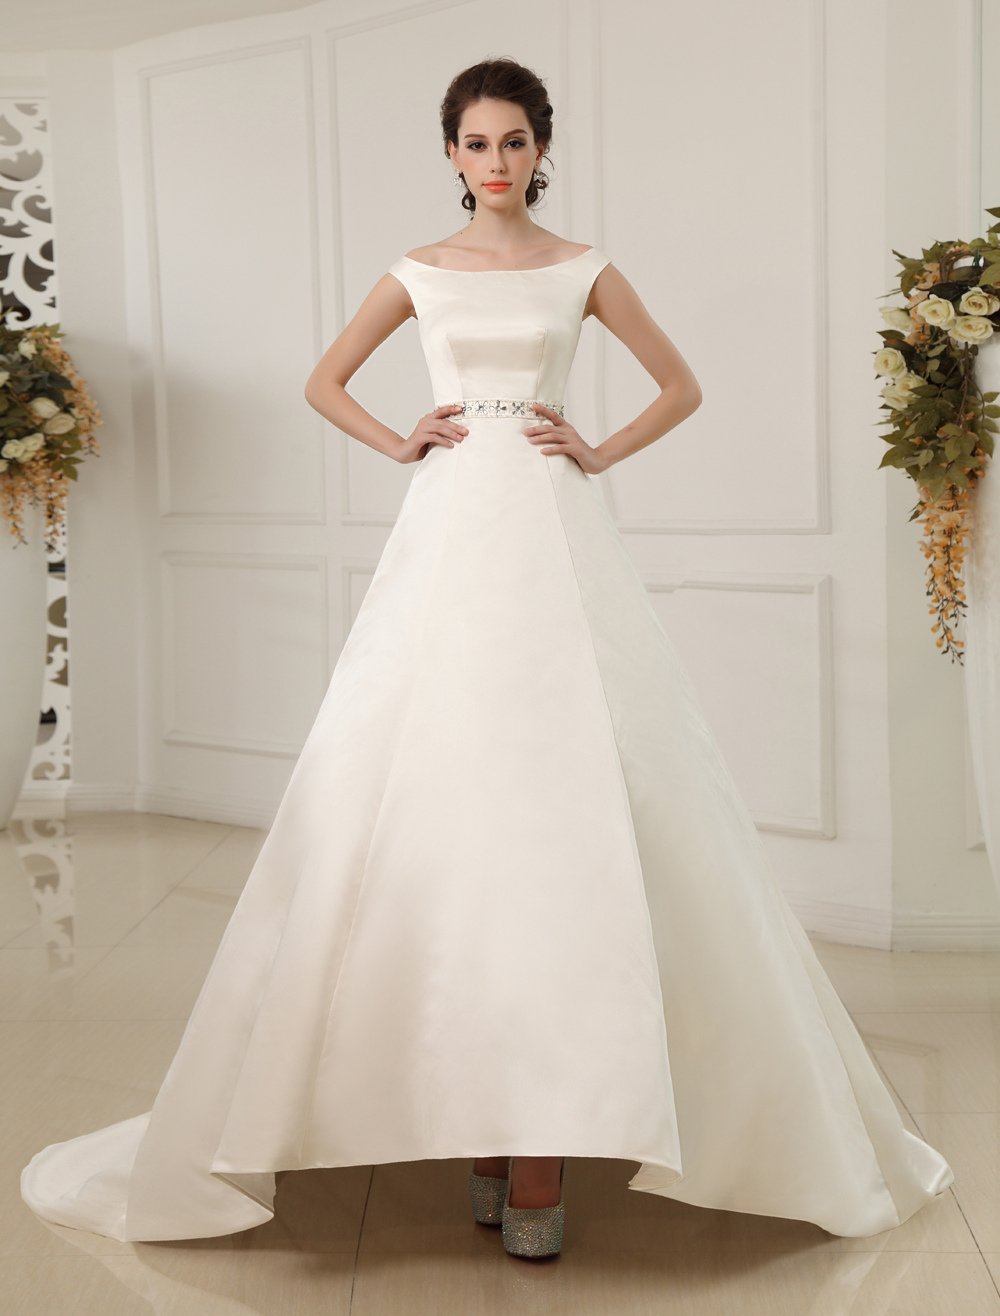 Court Train A-line Off-The-Shoulder Beaded Ivory Wedding Dress with Bateau Neck  Milanoo